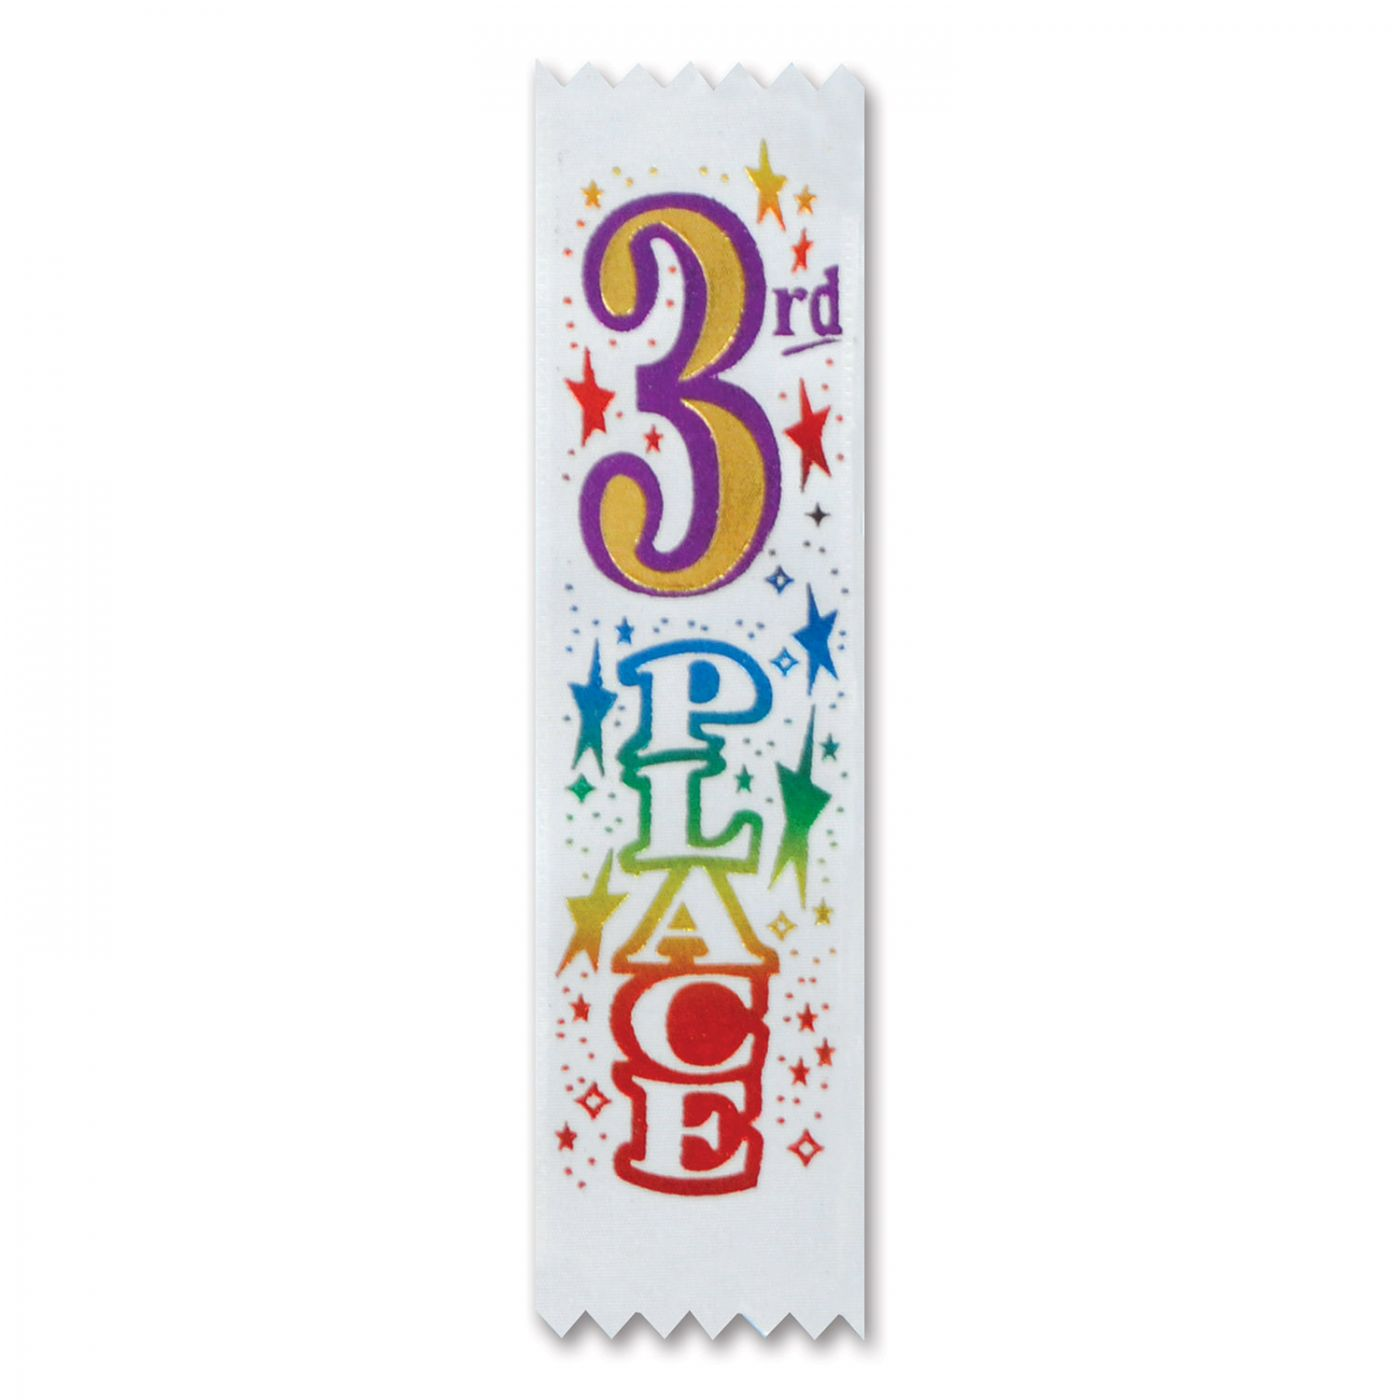 Image of 3rd Place Value Pack Ribbons (3)